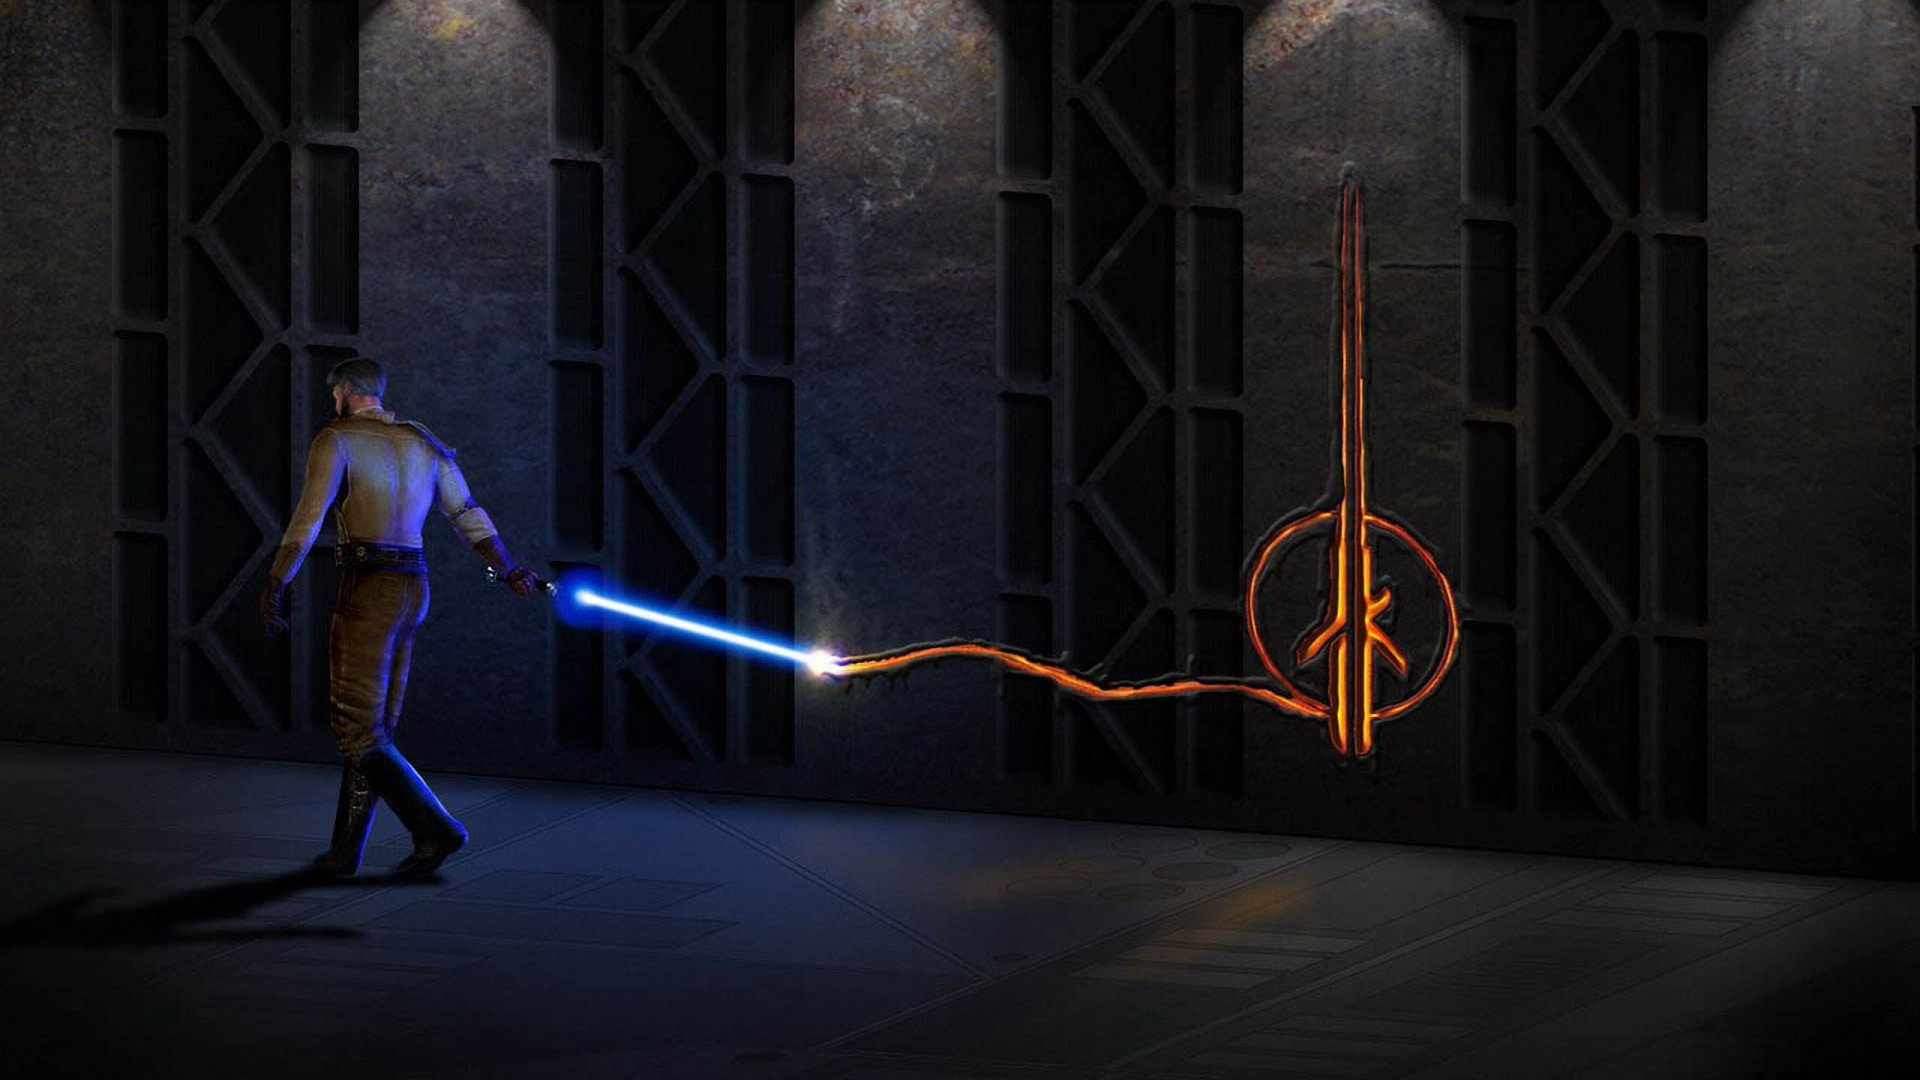 Jedi Outcast tagged 1920x1080 Wallpapers 1920x1080 Wallpapers 1920x1080